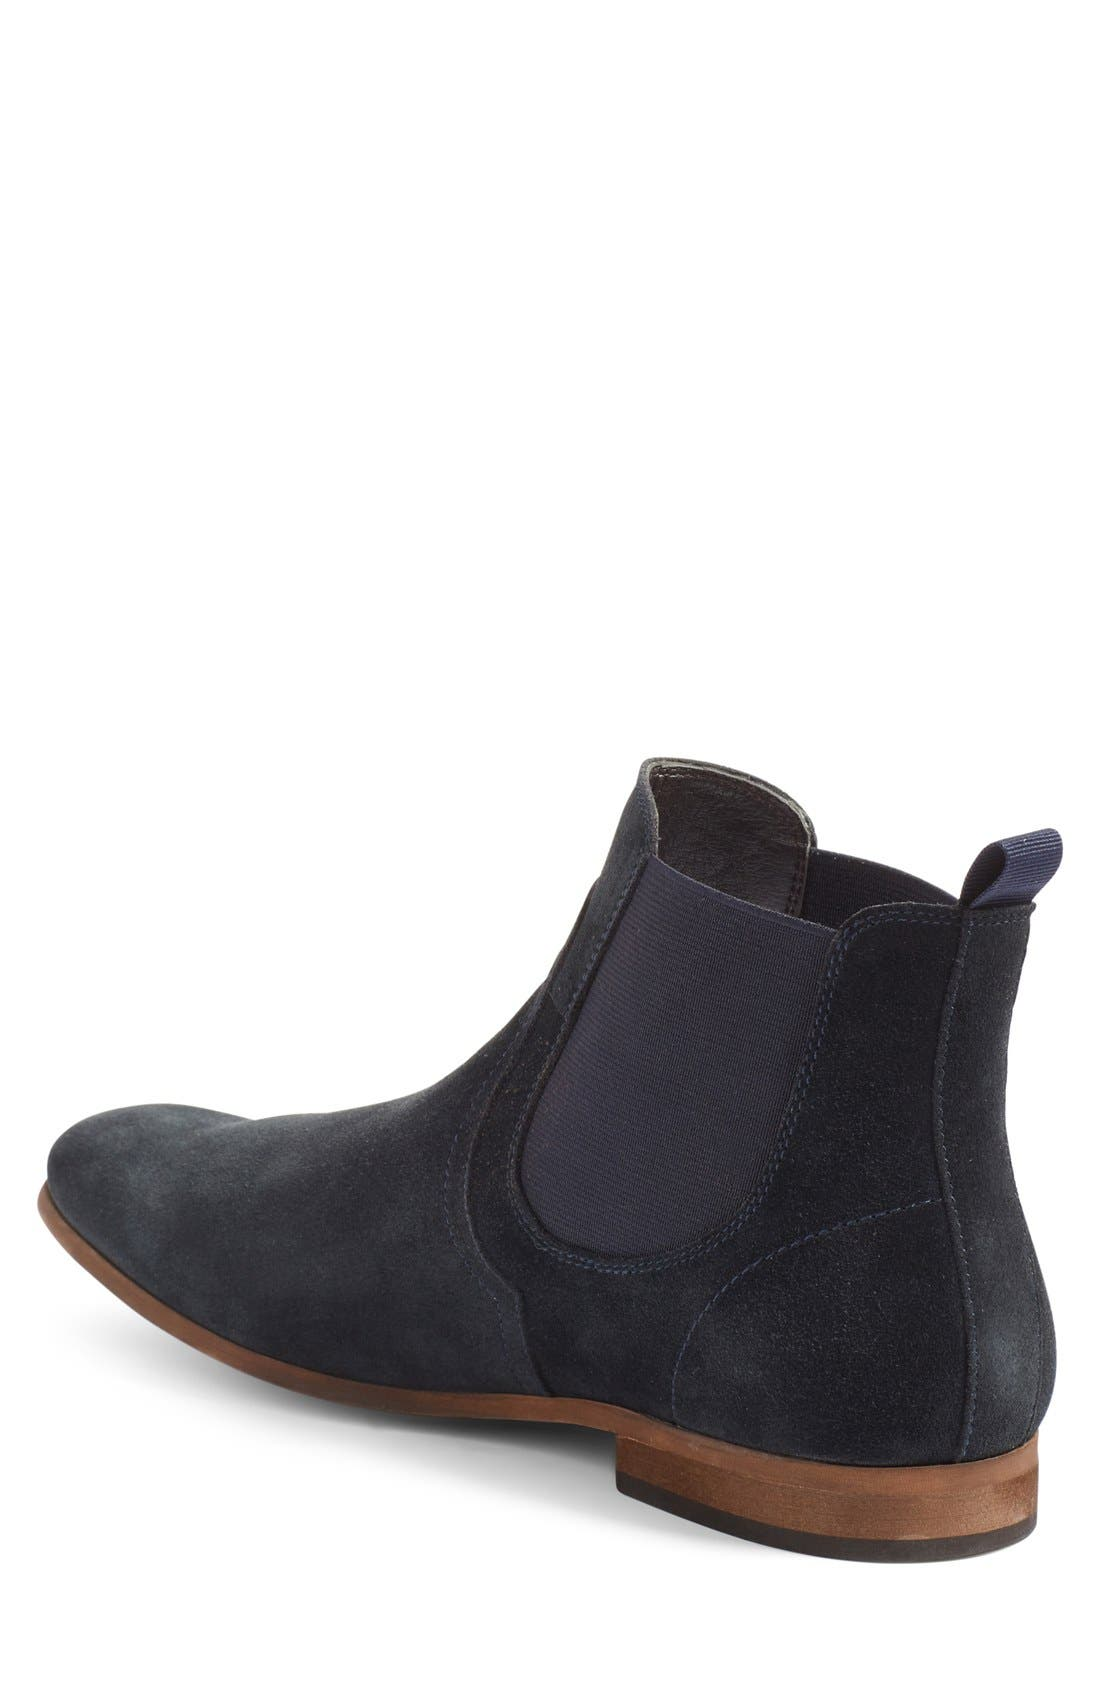 Brysen Chelsea Boot,                             Alternate thumbnail 20, color,